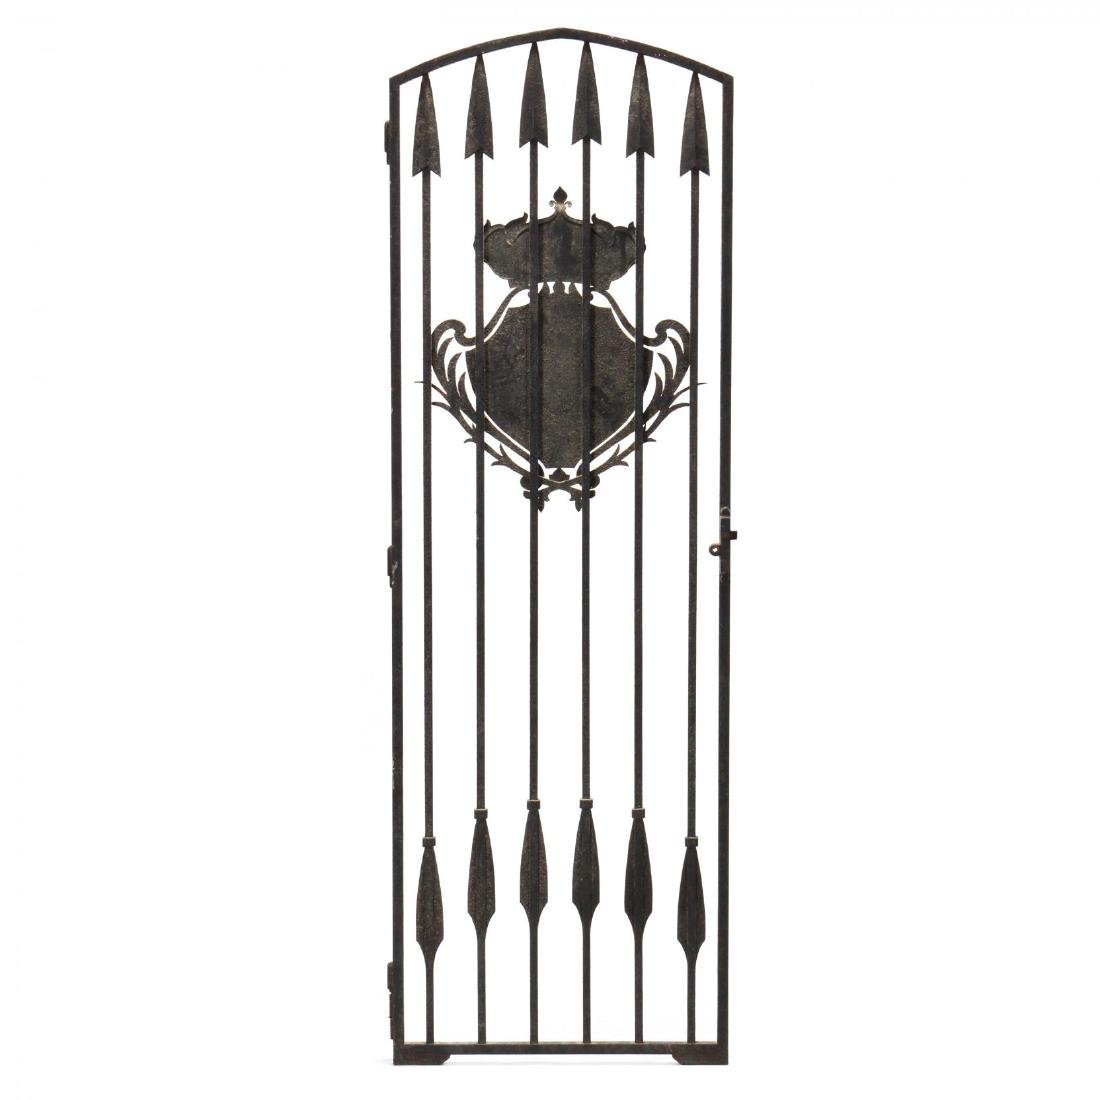 Continental Antique Iron Gate with Coat of Arms - 5